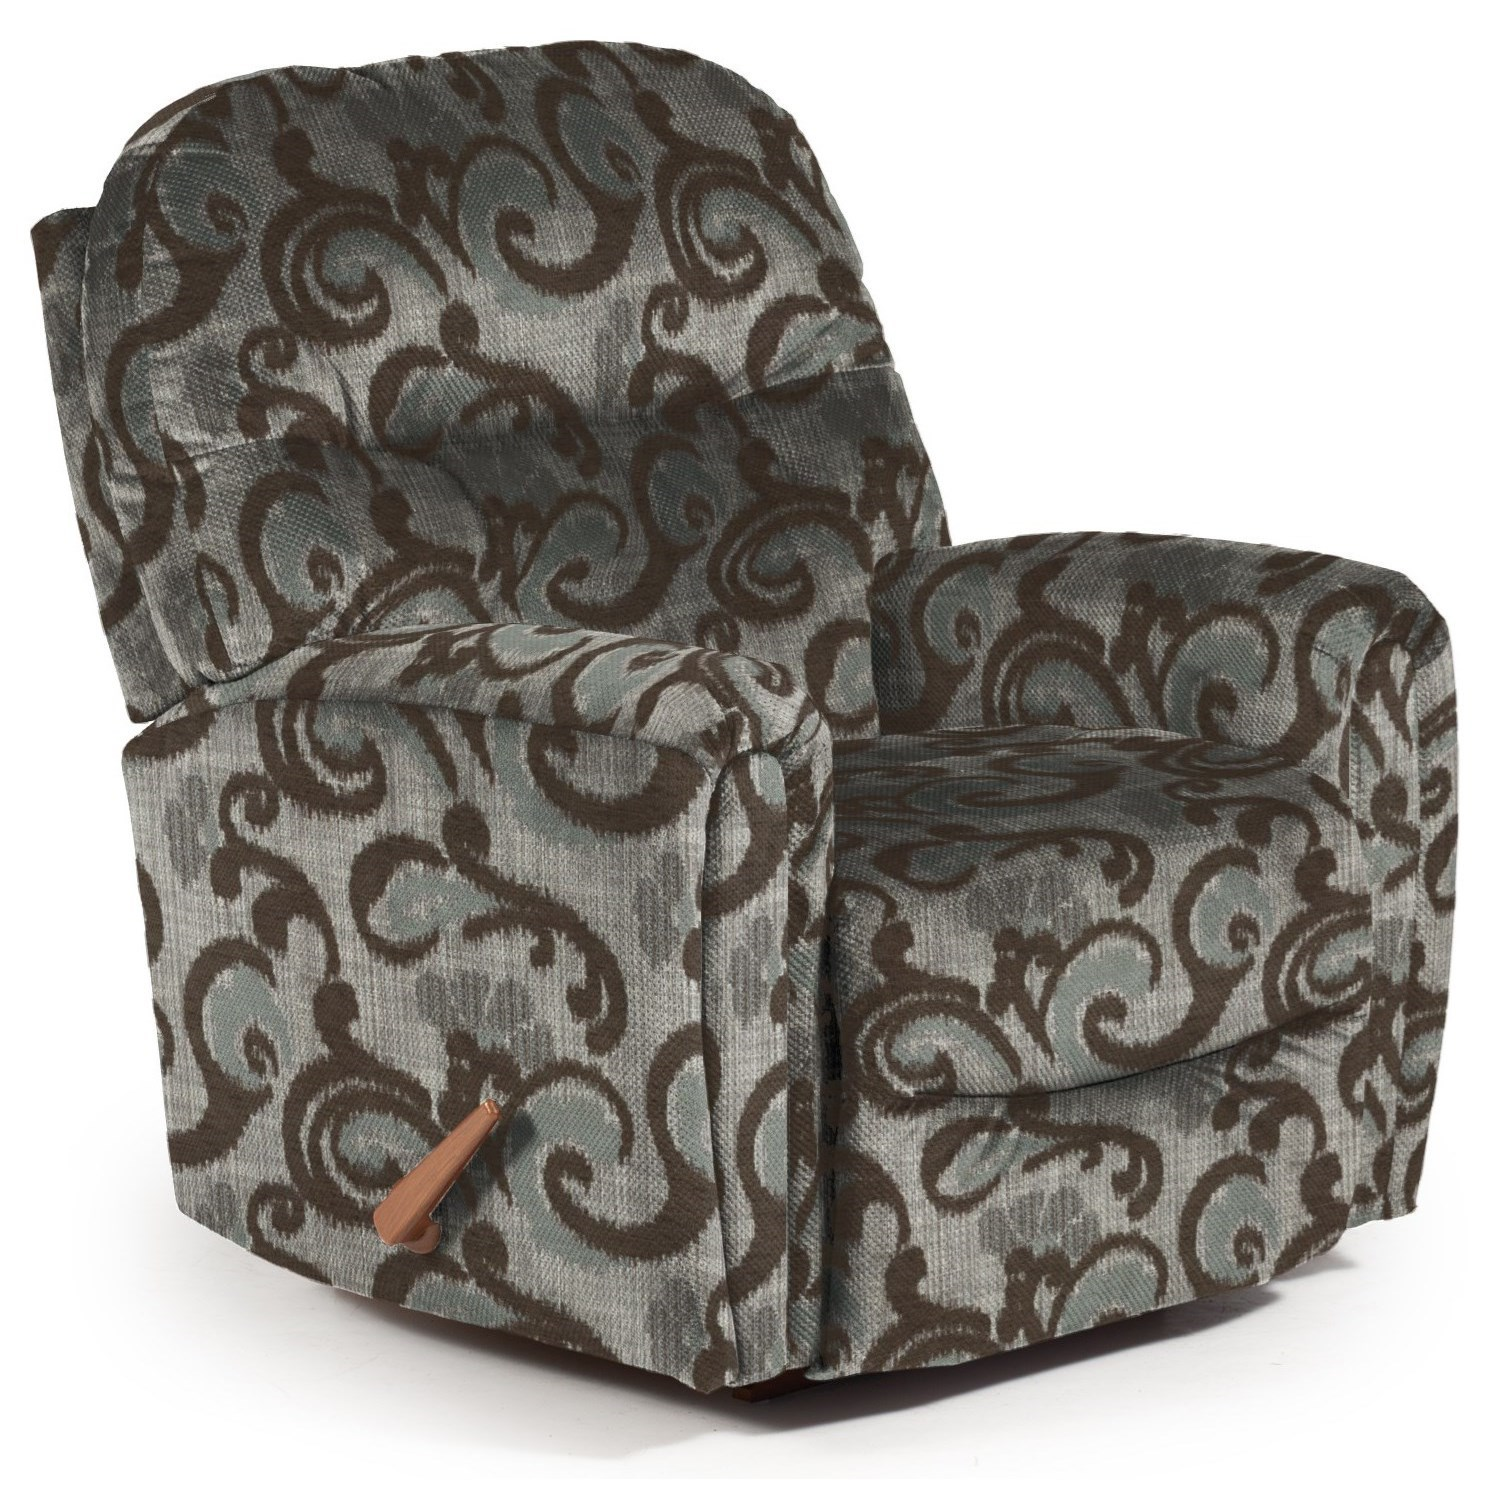 Best Home Furnishings Recliners - Medium Markson Power Space Saver Recliner - Item Number: 653357800-28823